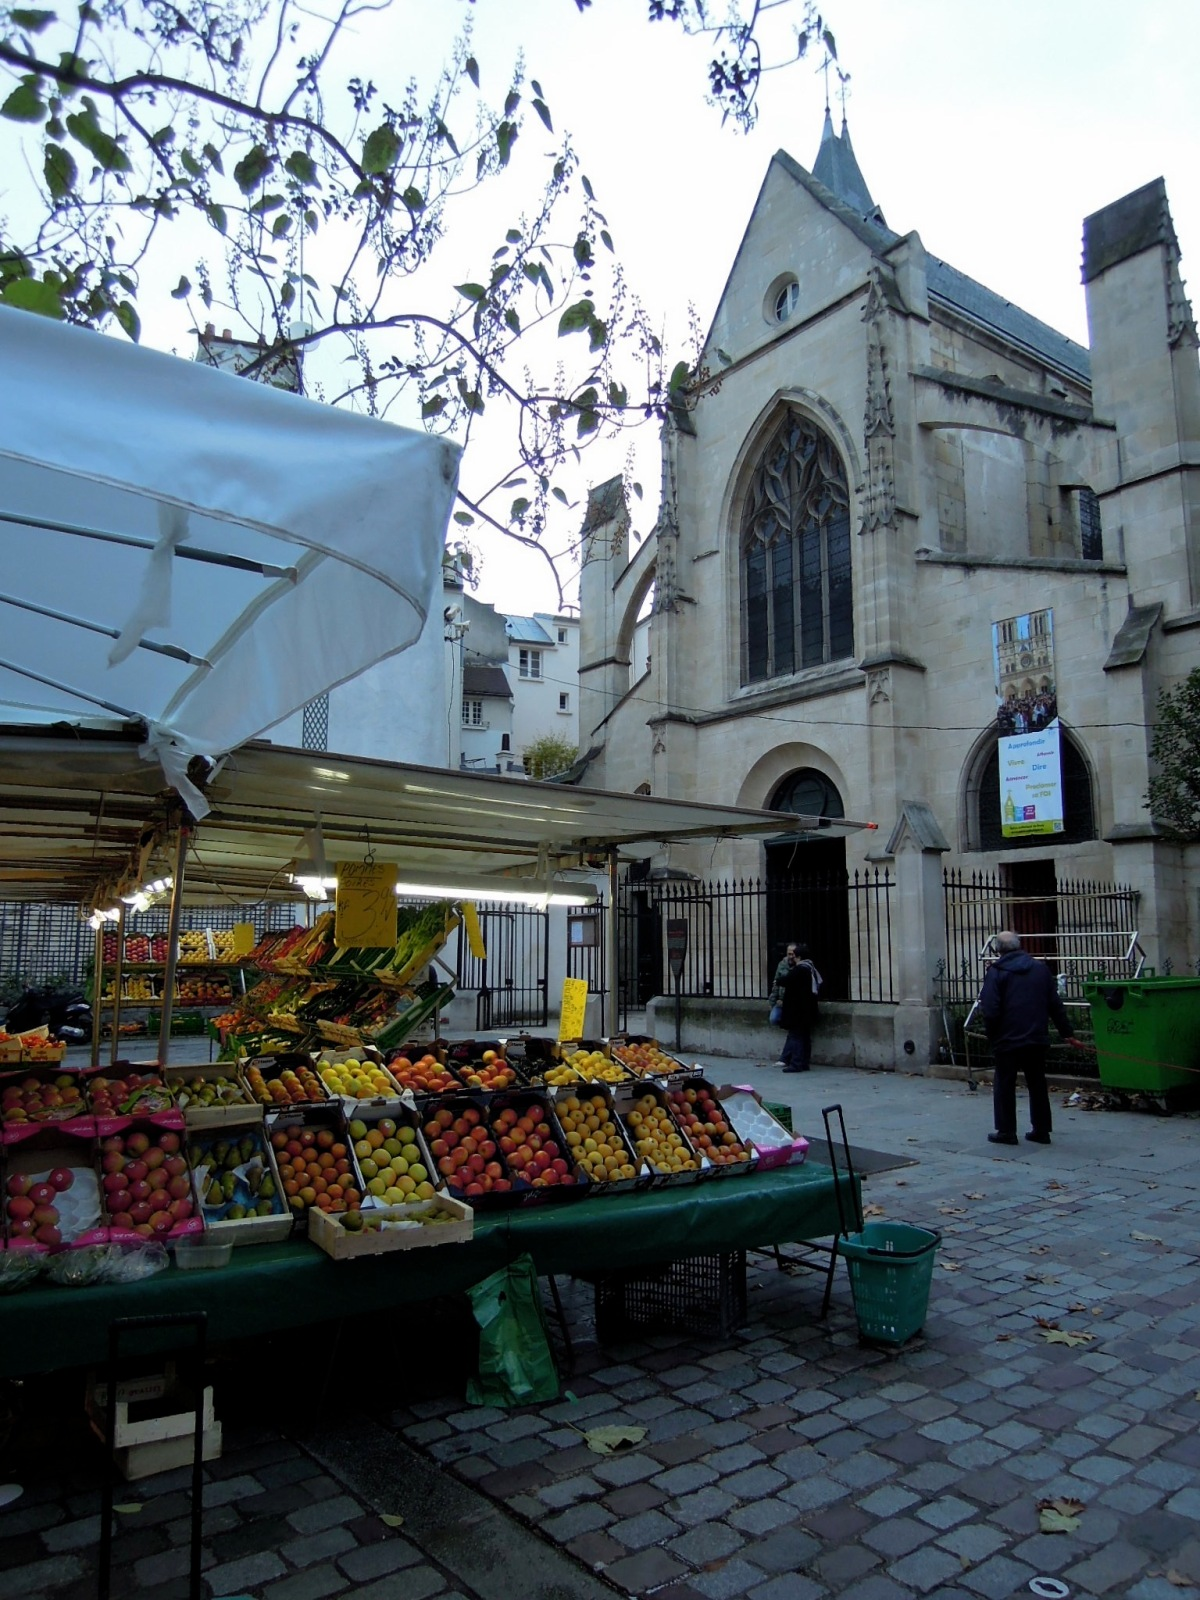 Produce stand next to the Église Saint-Médard